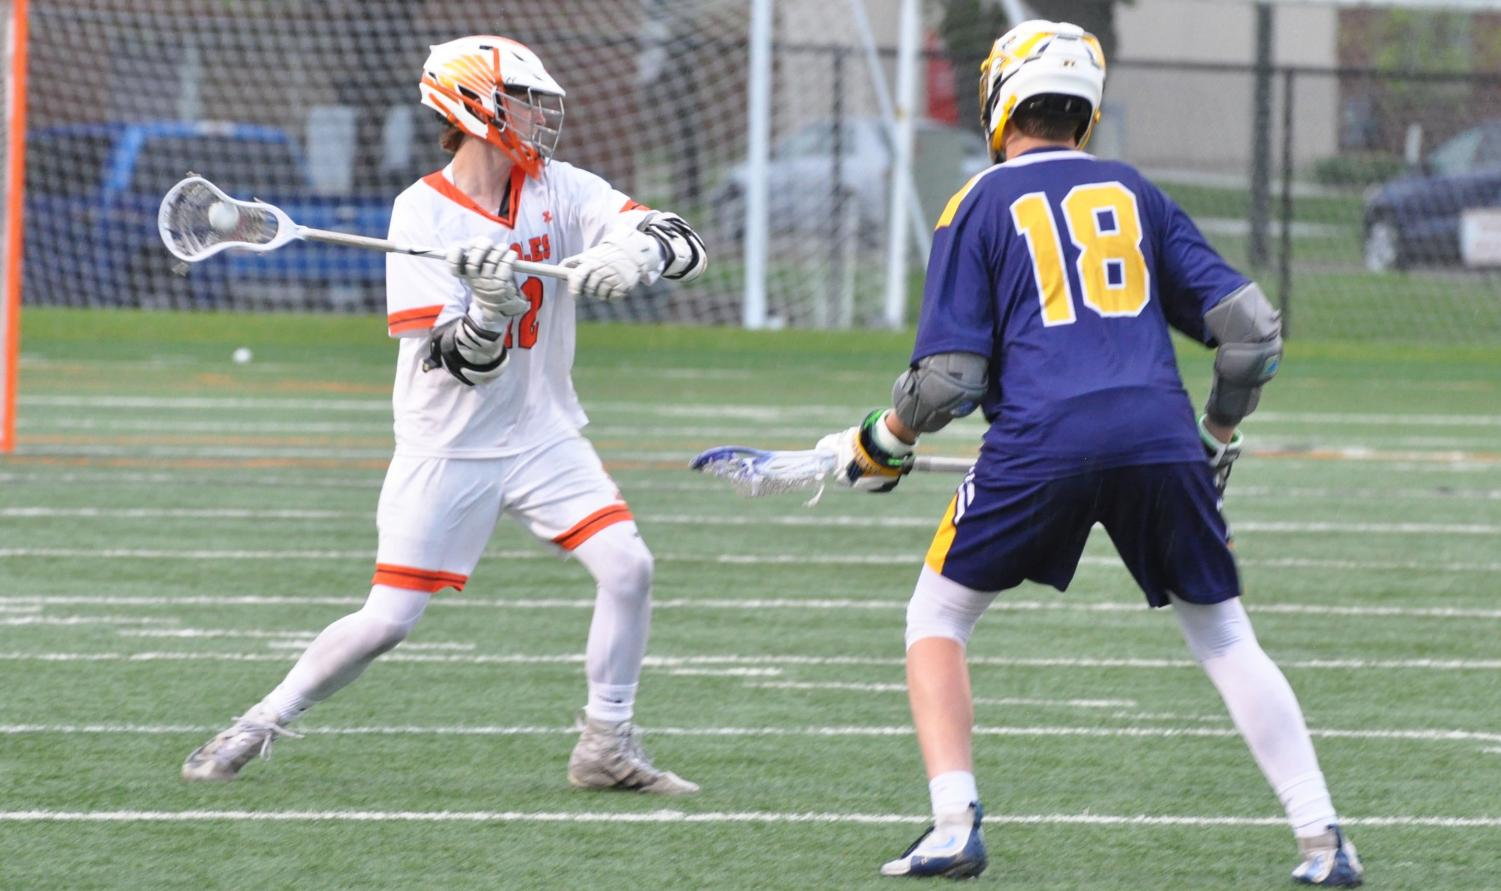 Junior Parker Brynildson avoids Kennedy's senior Andy Trenary and looks to move the ball upfield. Despite losing, Park forced Kennedy to use multiple timeouts throughout the game.